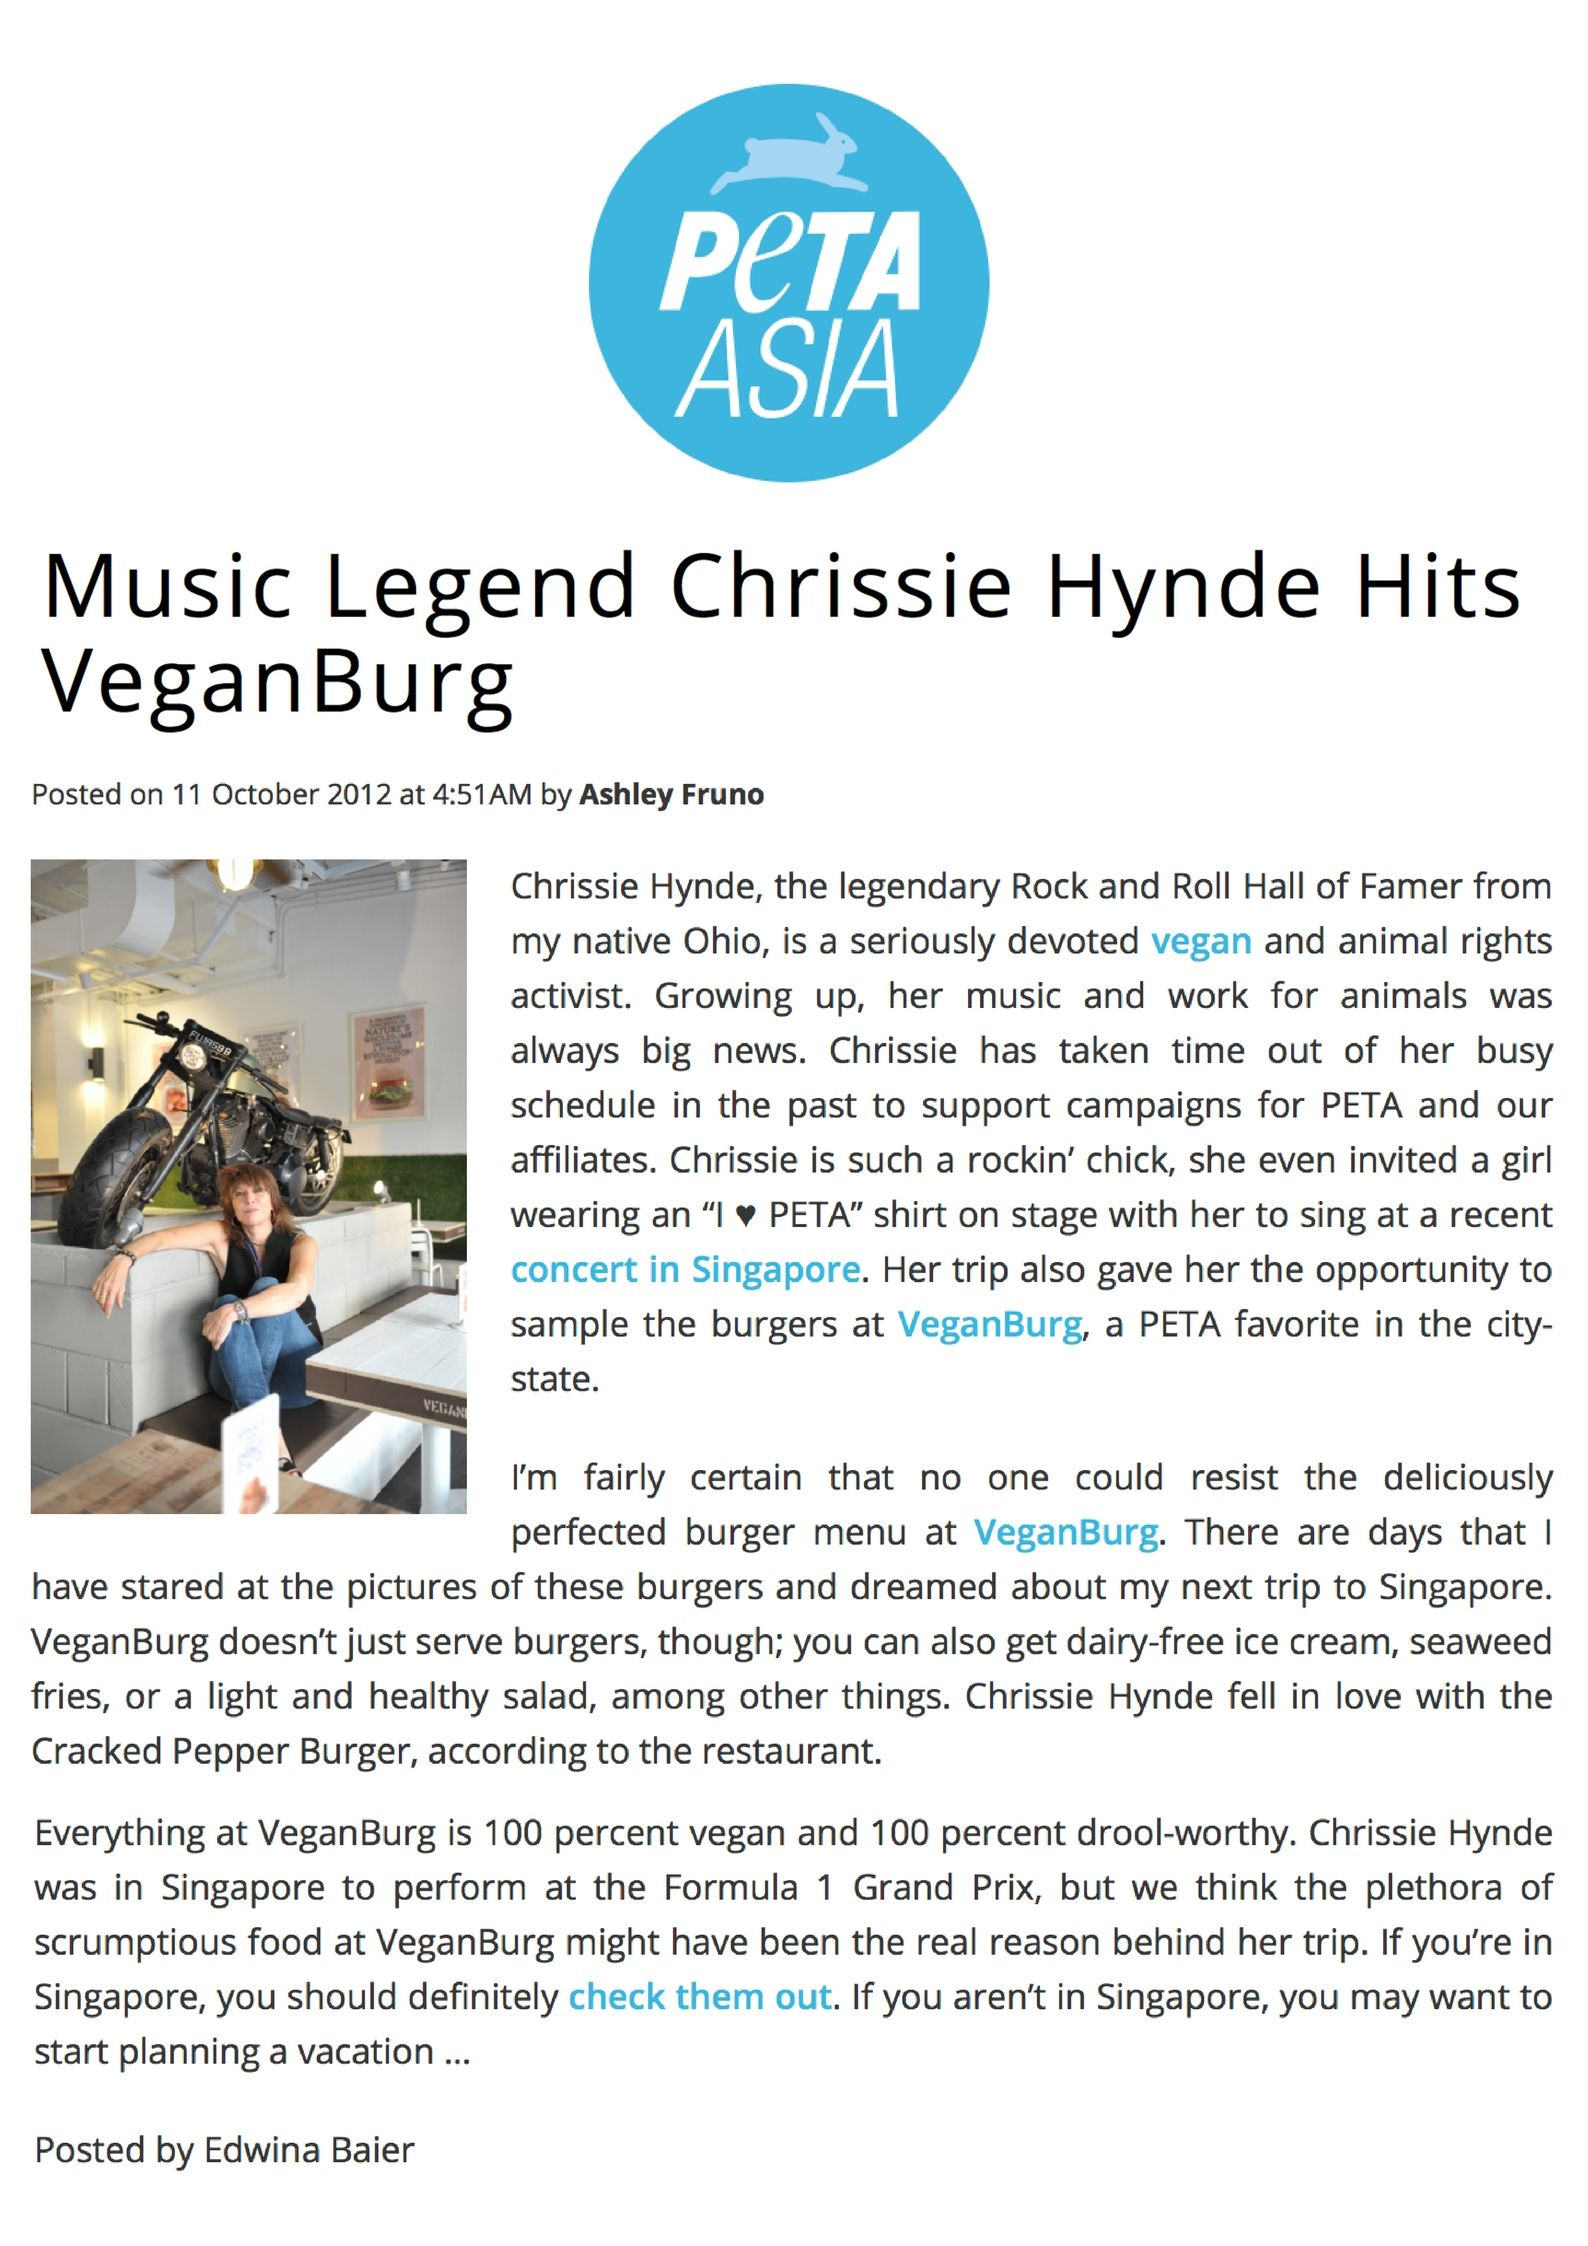 PETA Asia_ Music Legend Chrissie Hynde Hits VeganBurg.jpg